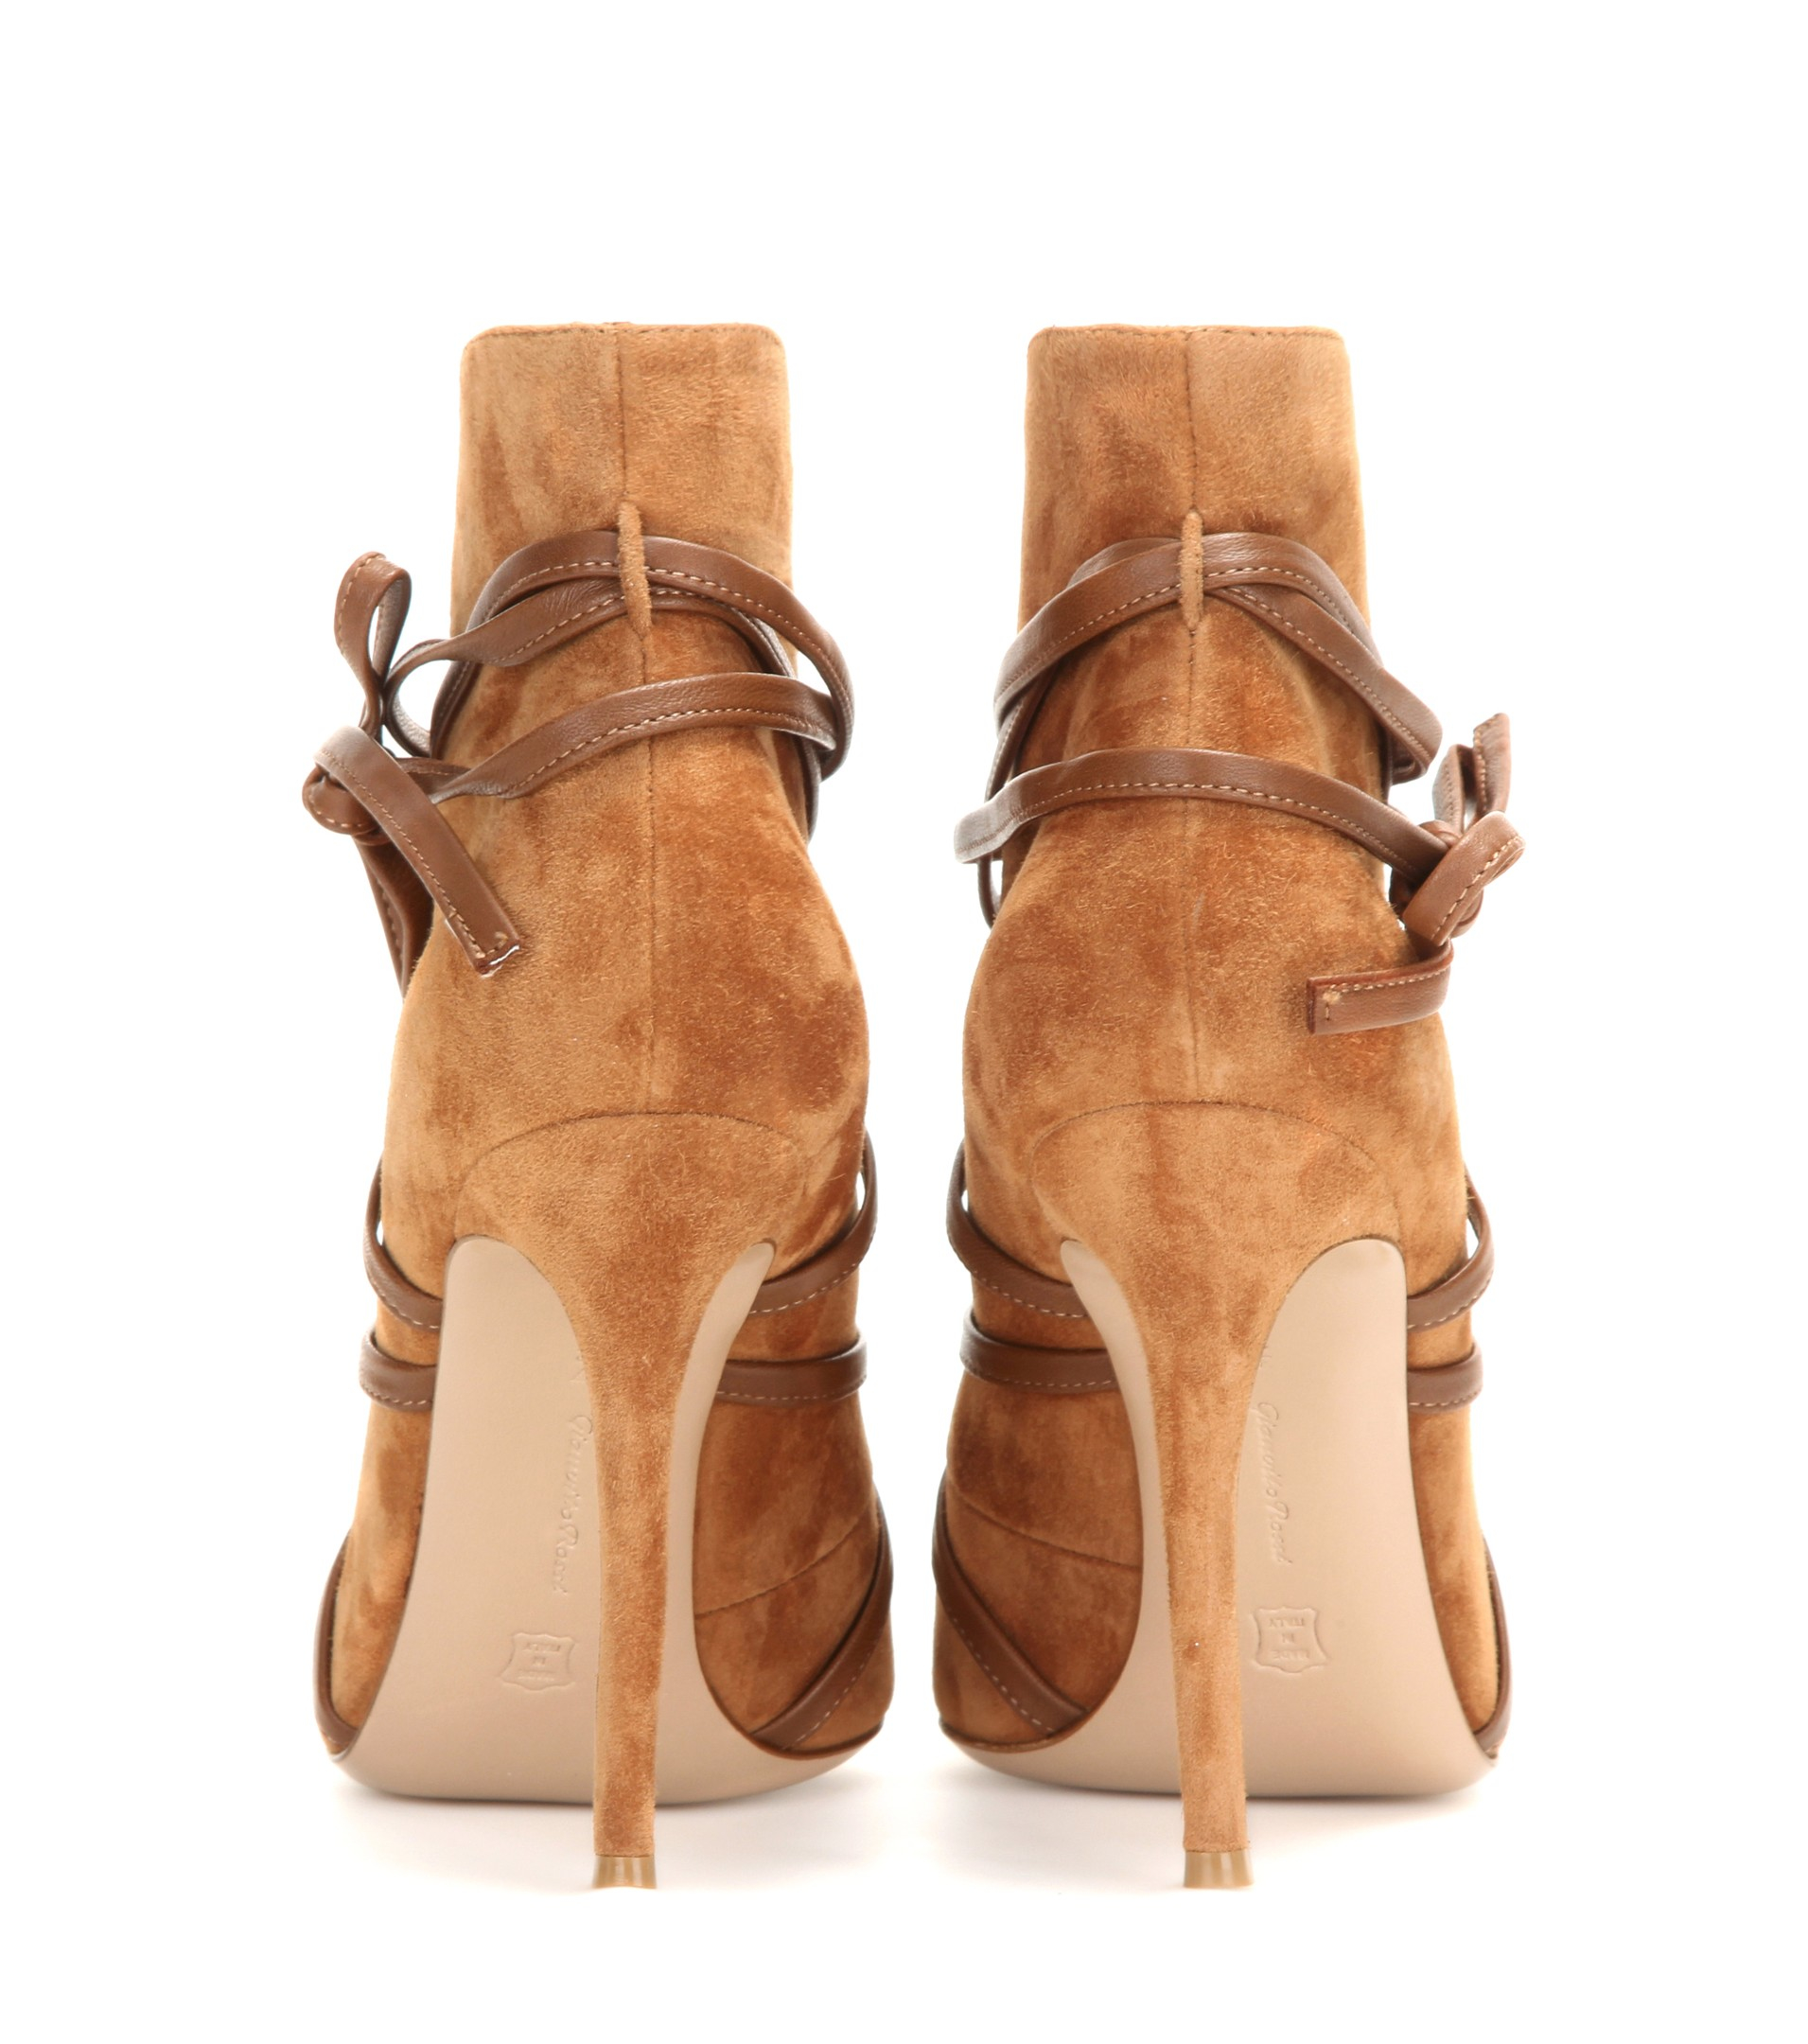 Gianvito Rossi Peep-Toe Suede Ankle Booties free shipping view buy cheap genuine 12xiMa5nHn